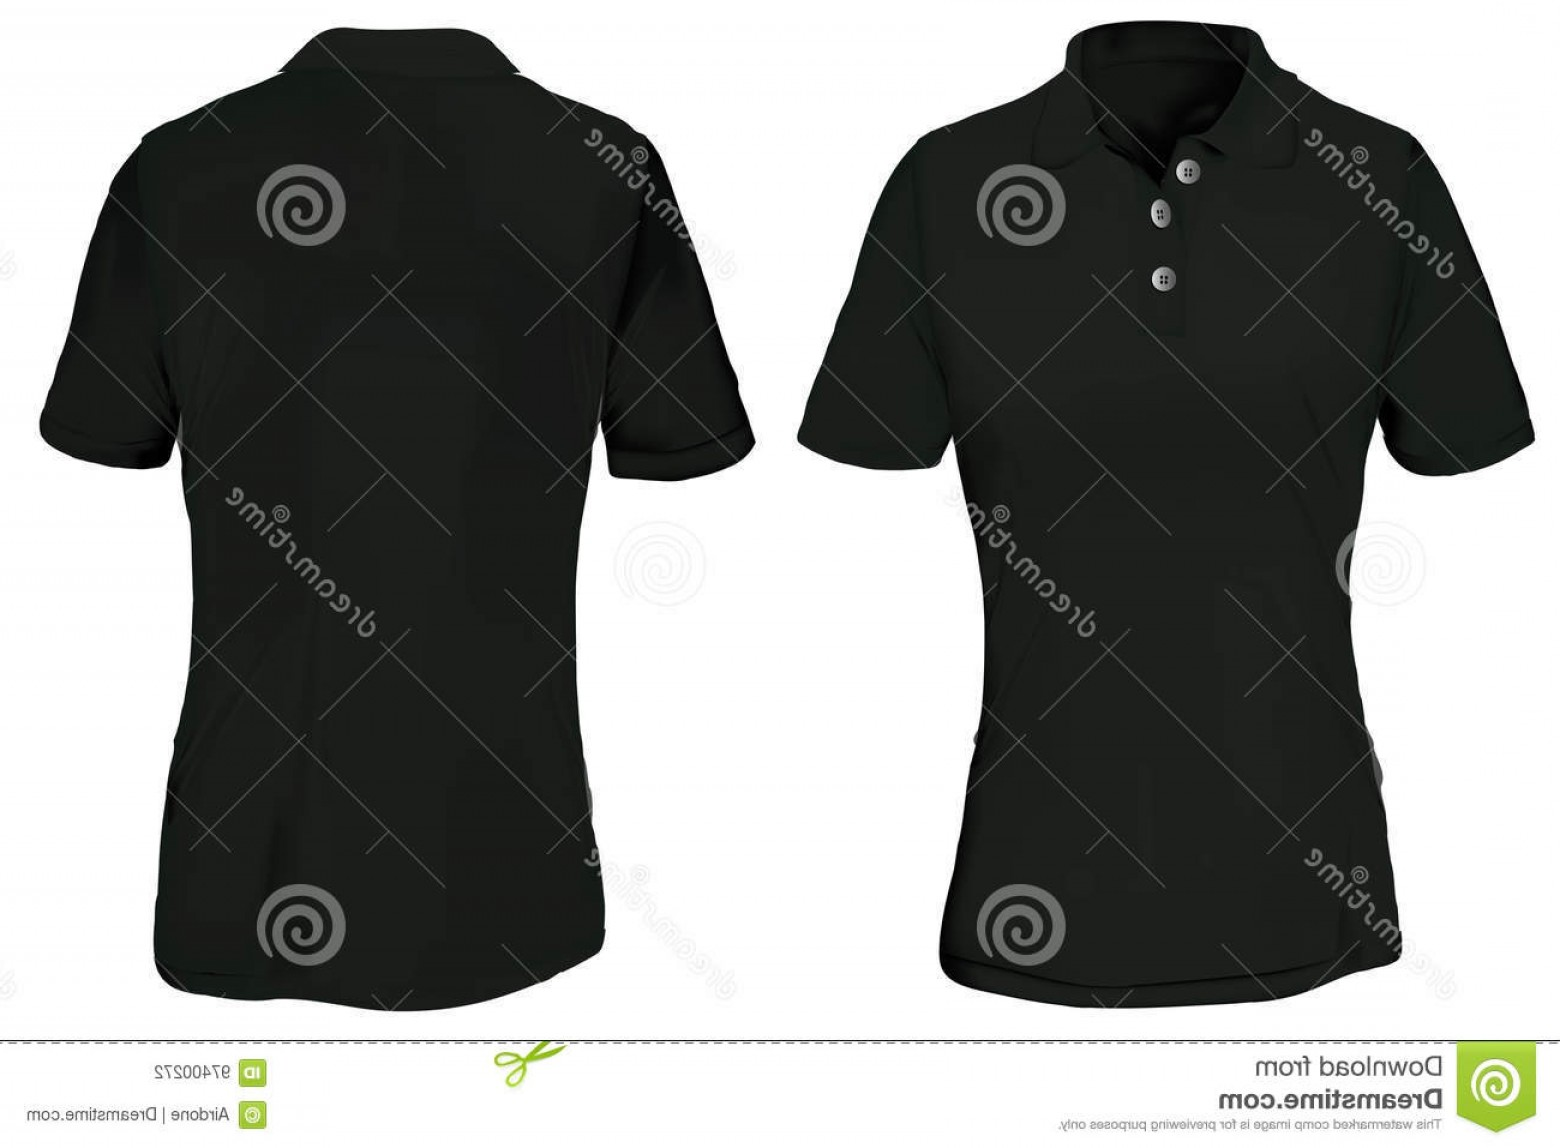 Female Polo Shirt Vector Template: Stock Illustration Black Polo Shirt Template Woman Vector Illustration Blank T Front Back Design Isolated White Image